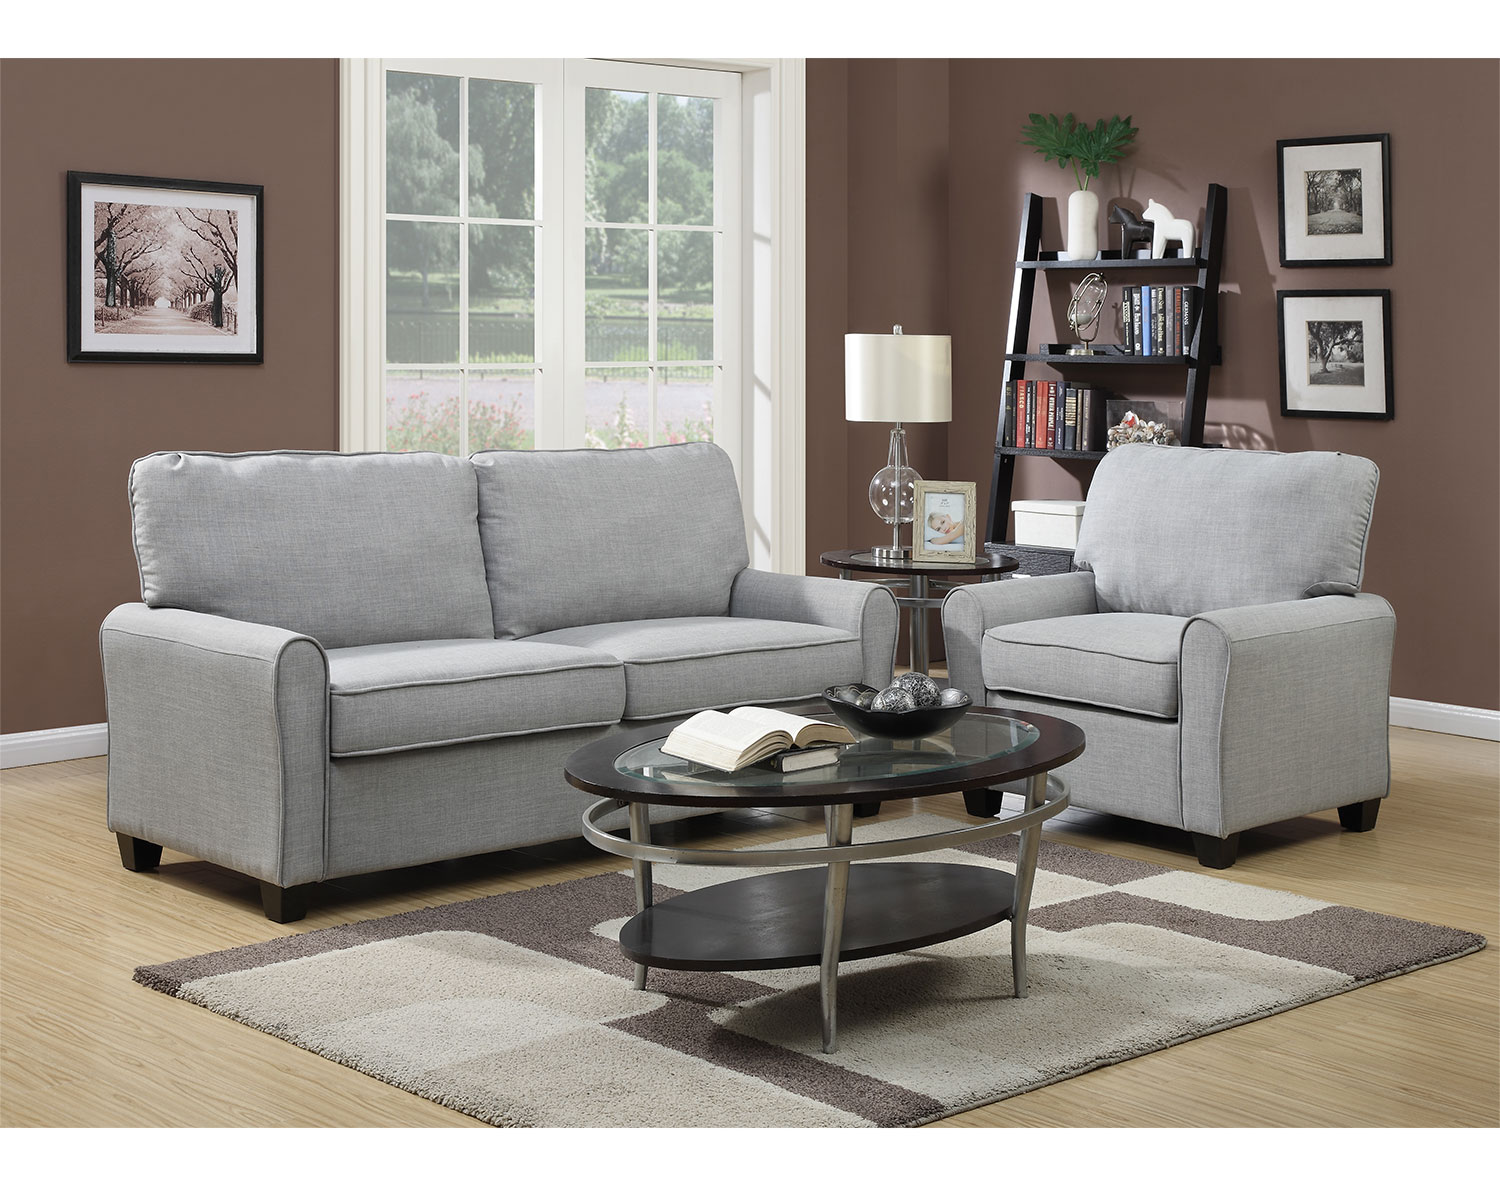 Value City Furniture offers affordable furnishing solutions for every room in your home. Whether you are looking for a new dining room or bedroom set, you are spoilt for choice at Value City online. Value City has been your trusted furniture expert since